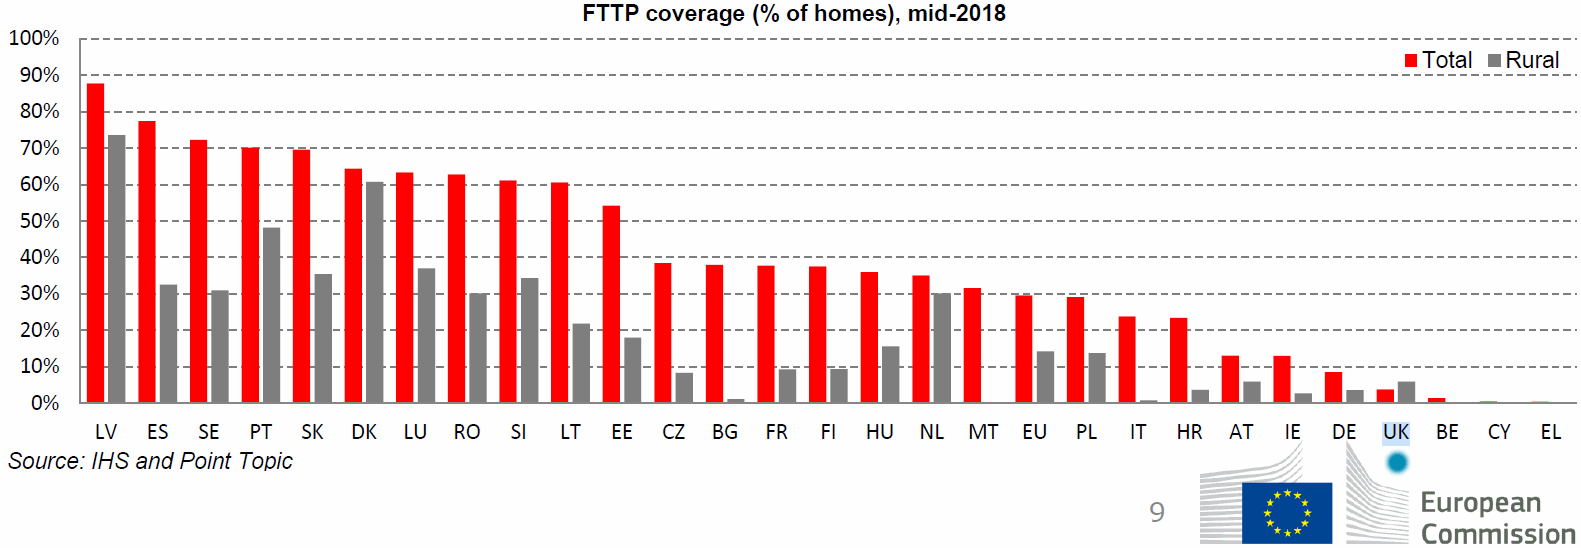 eu_2019_ftth_broadband_coverage_by_country